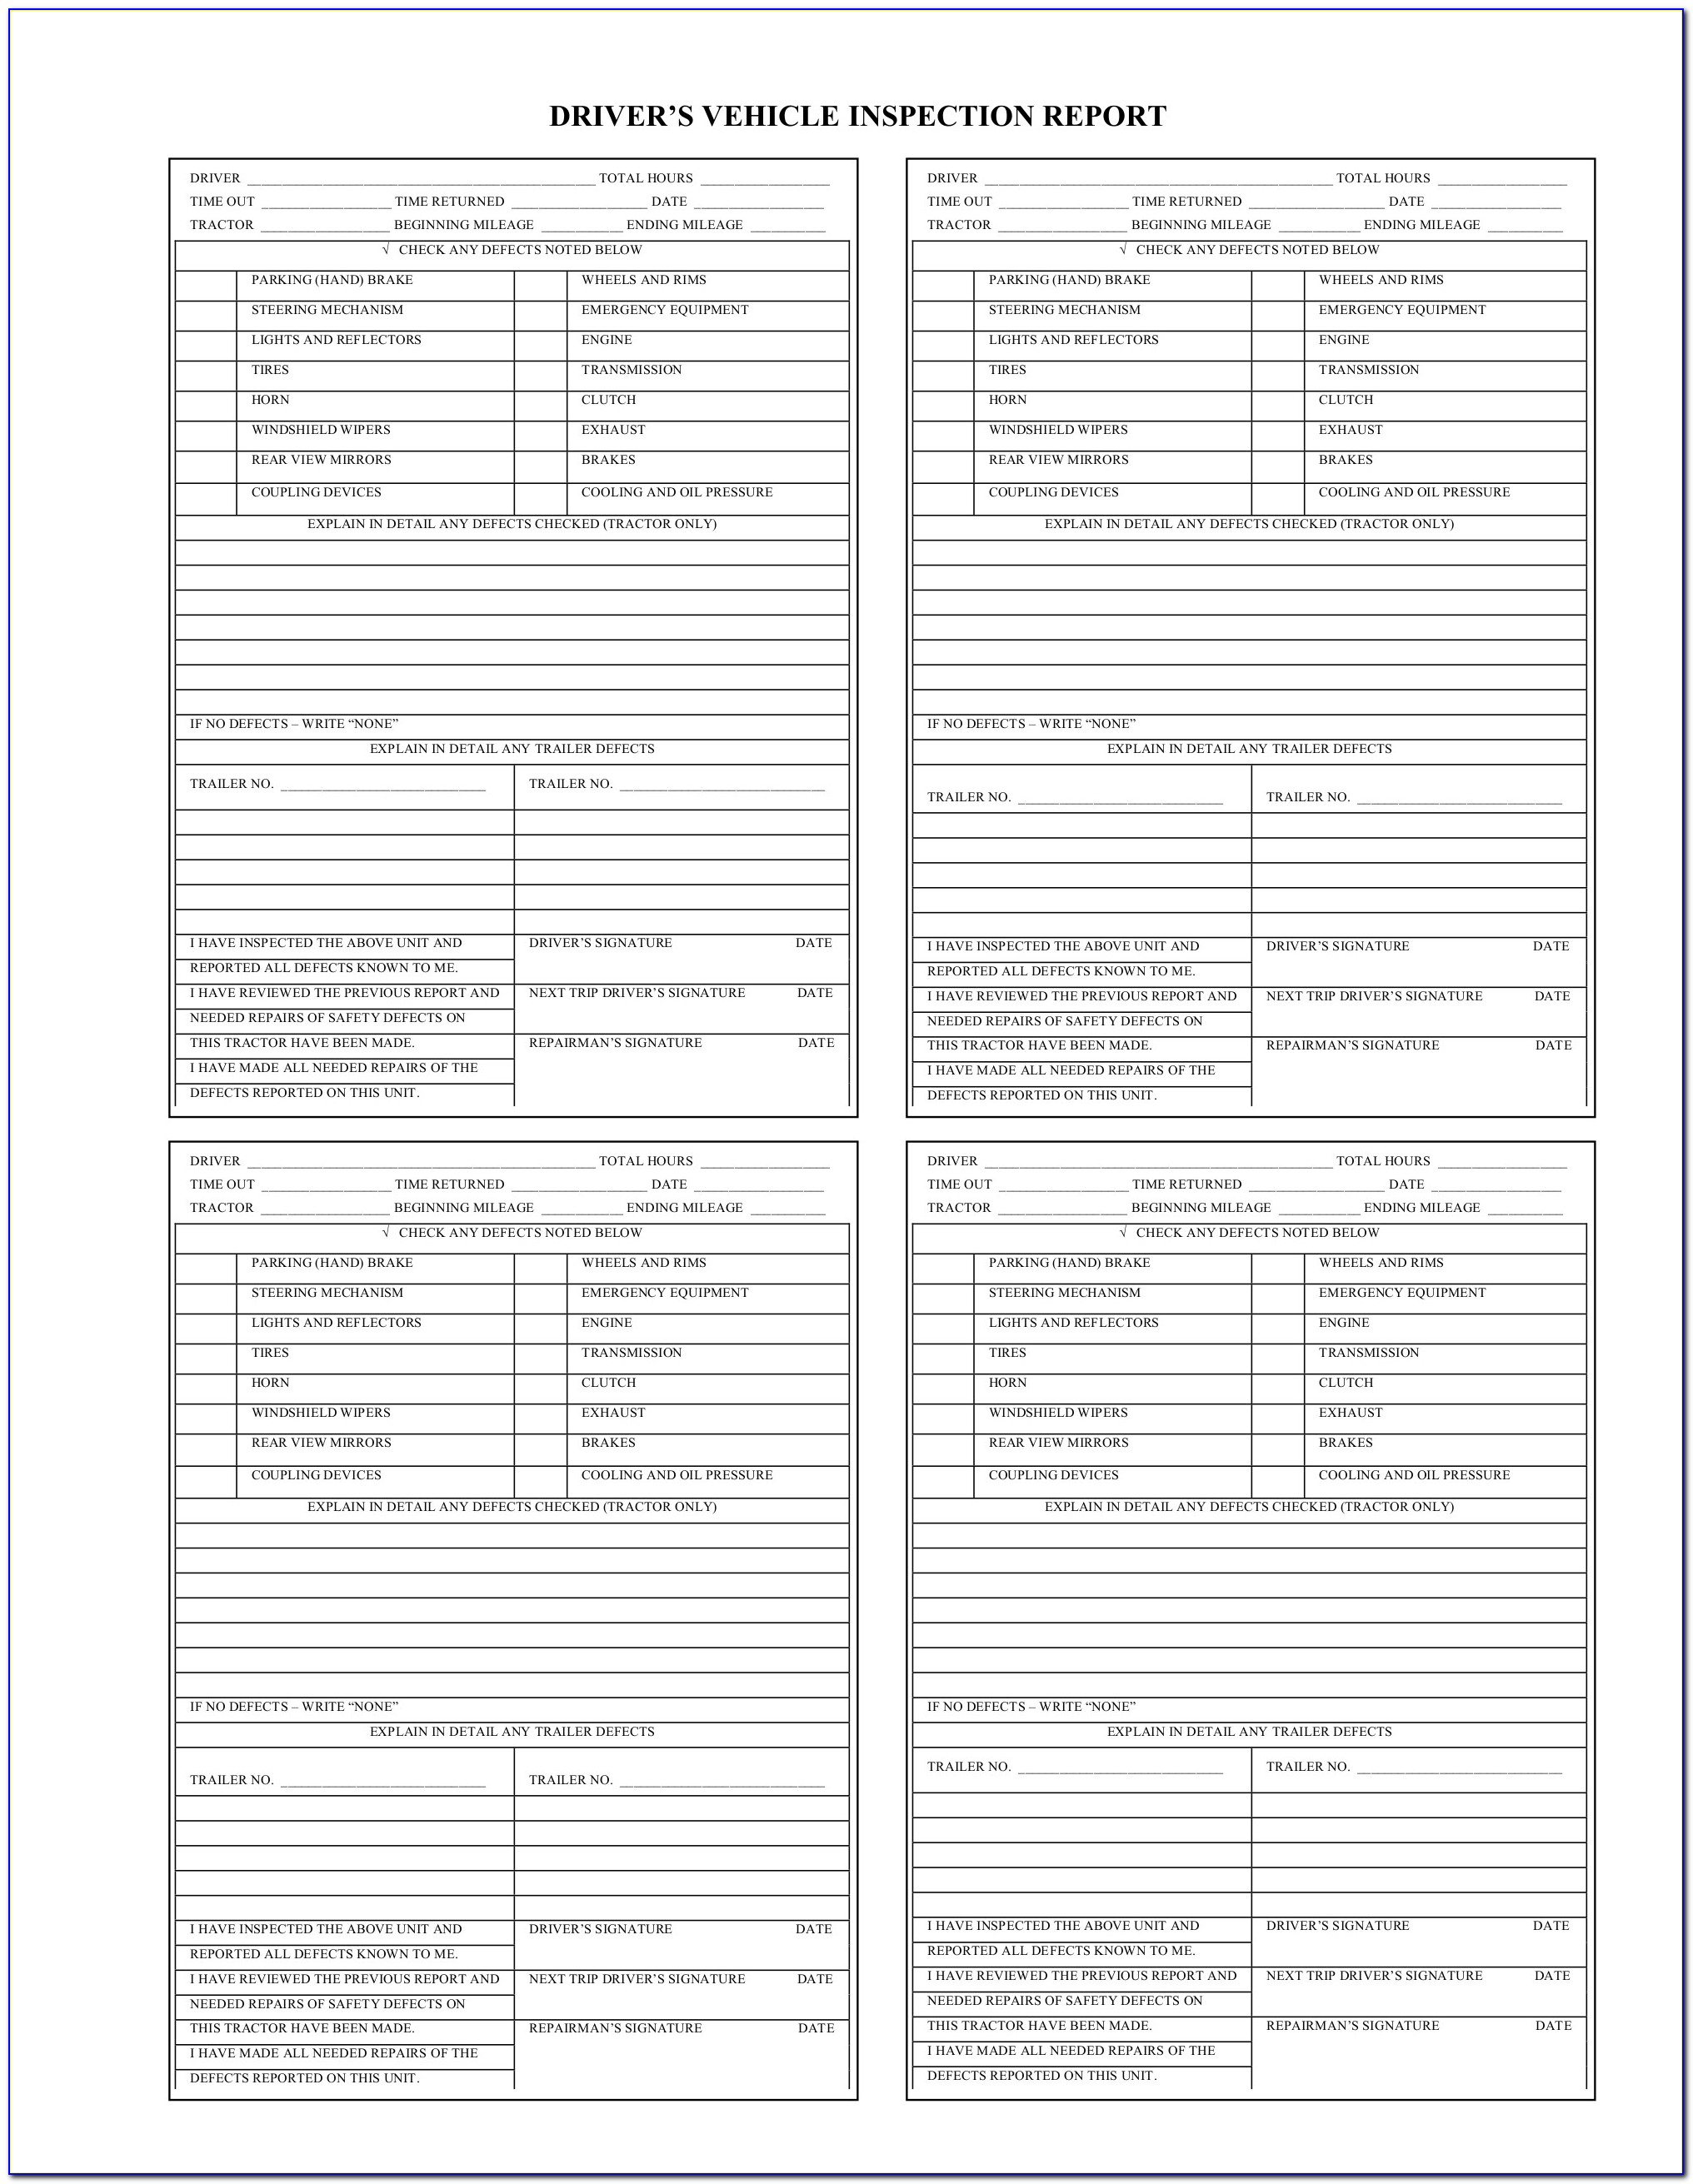 Commercial Property Inspection Report Template Unique Part 396 Page 2 Drivers Vehicle Inspection Report Form